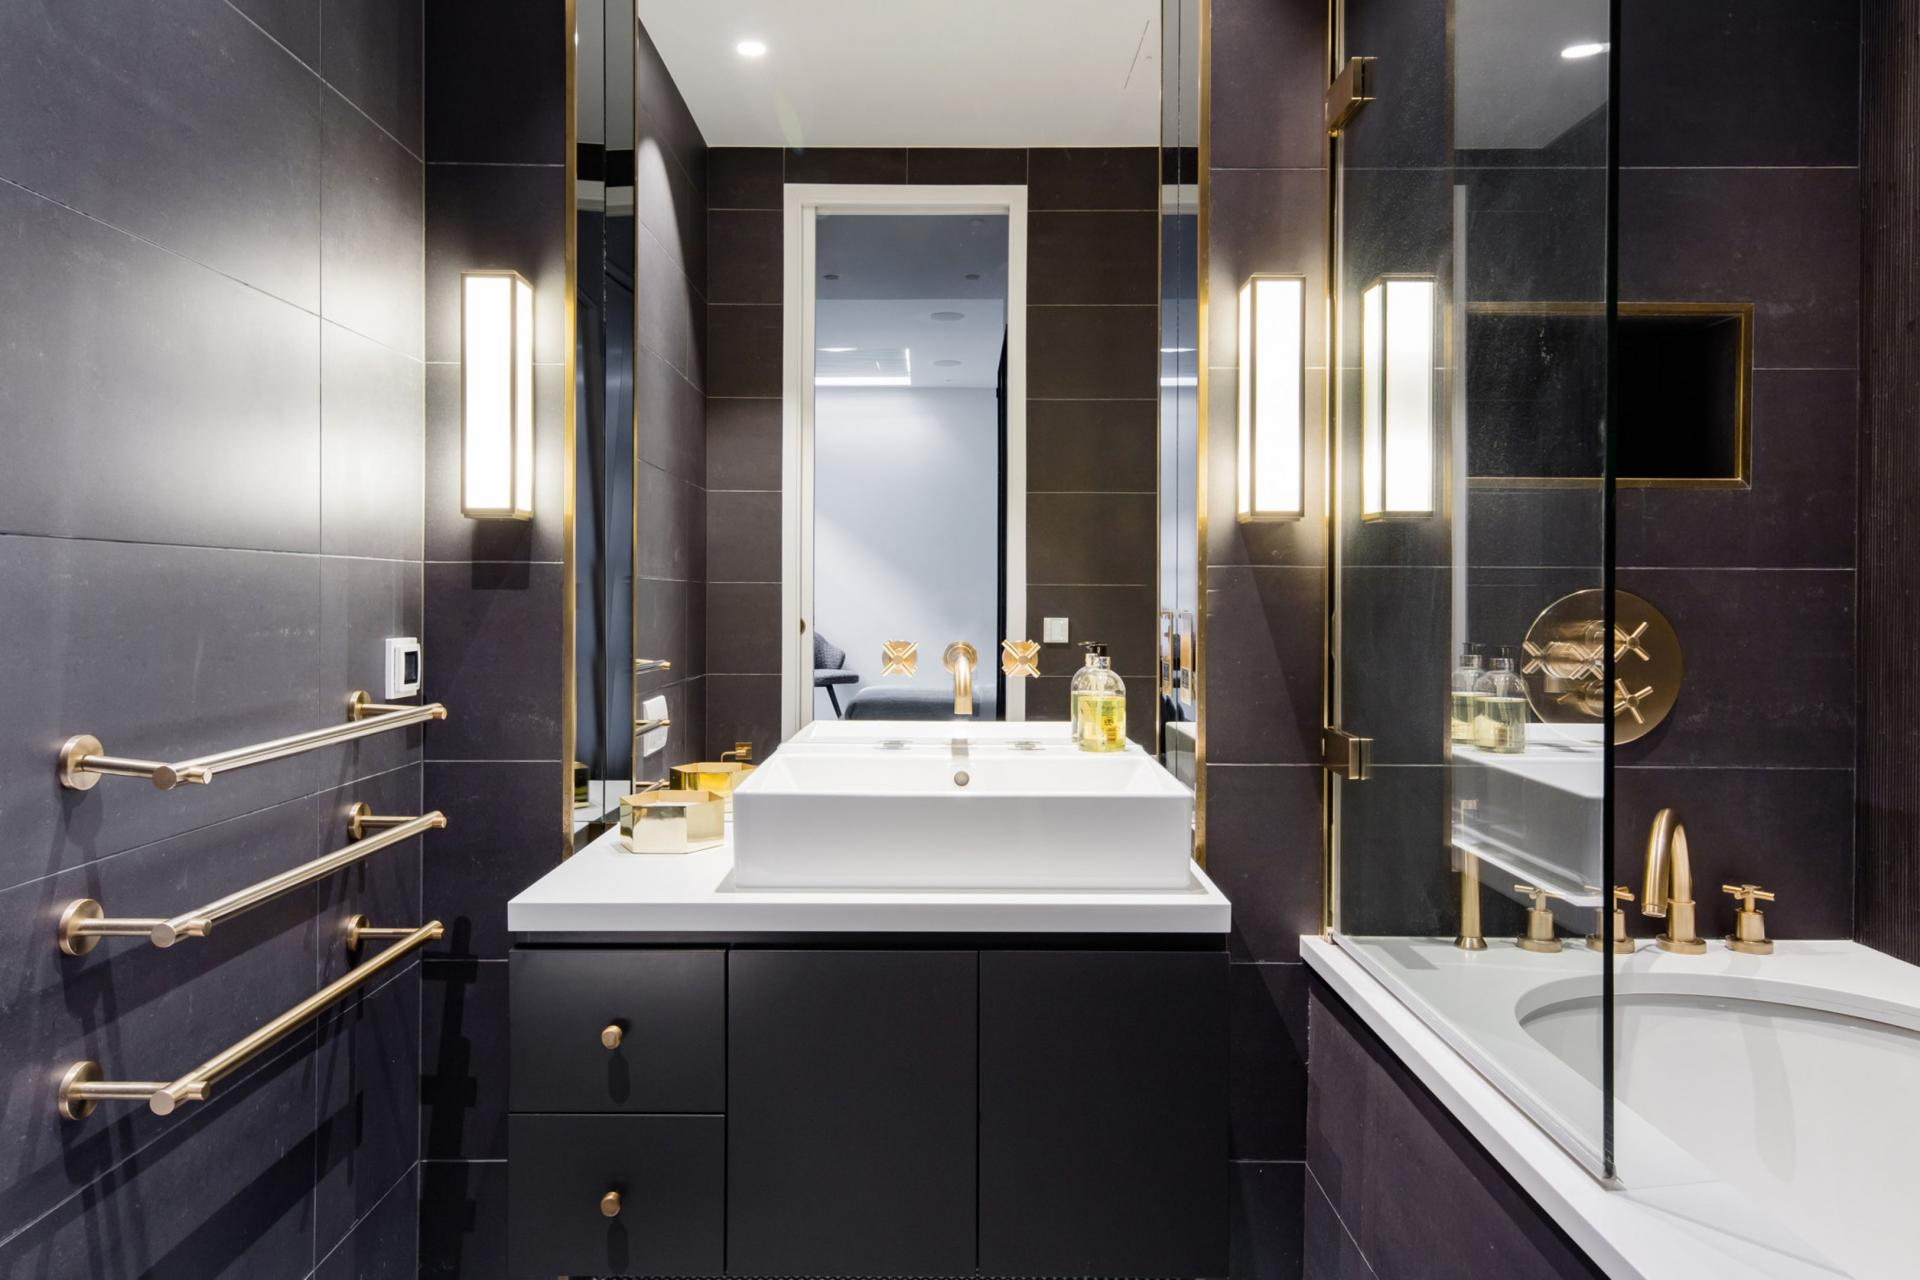 Sink at Royalty Mews, Carnaby, London - Citybase Apartments